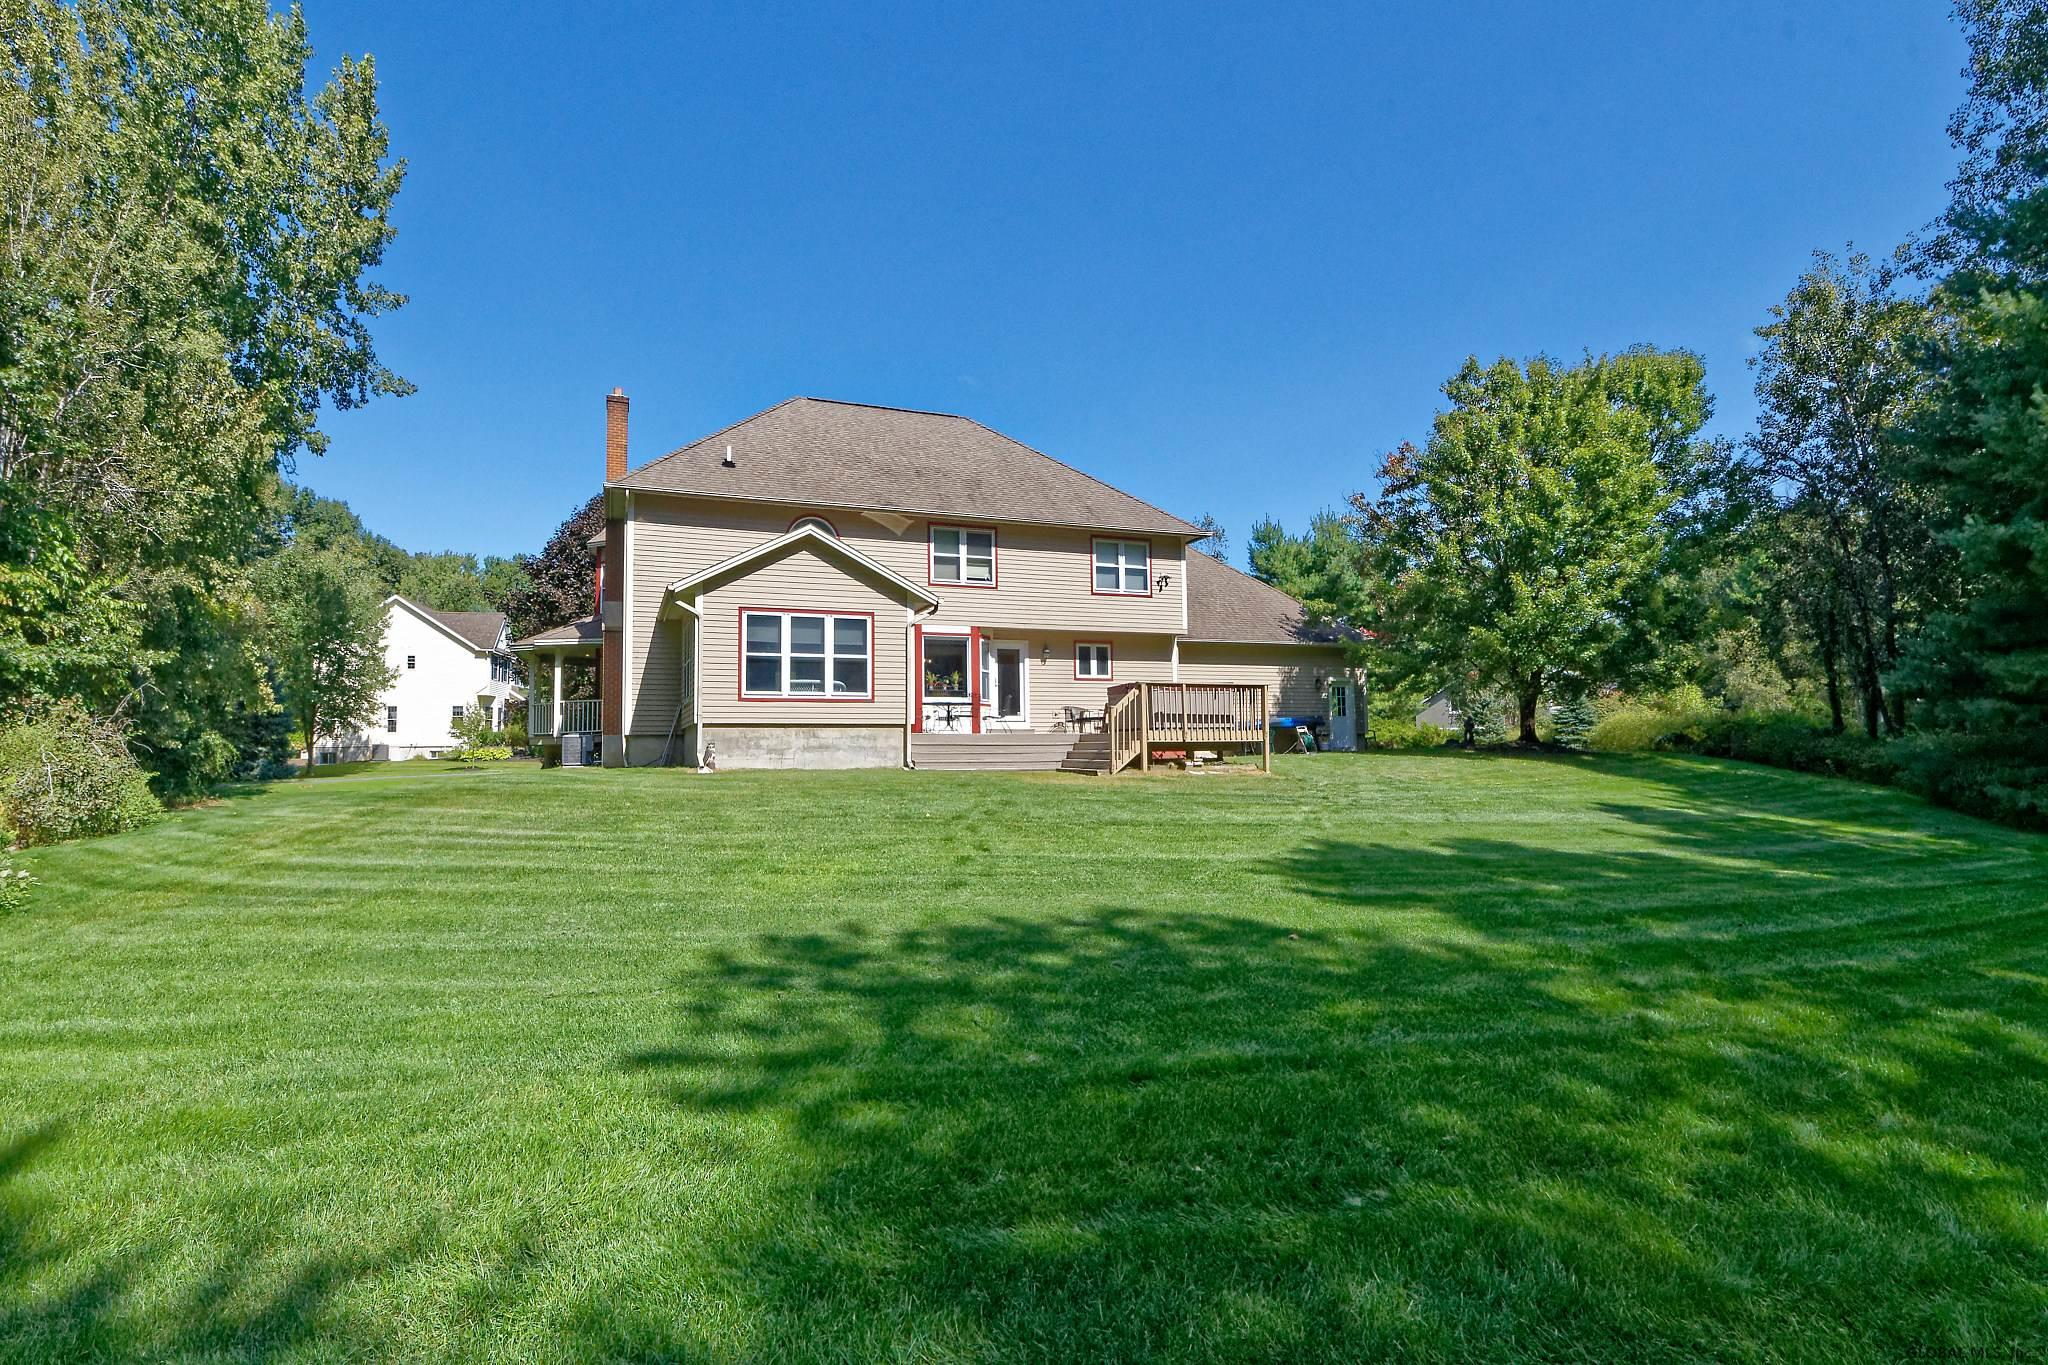 15 Cheviot Ct In Clifton Park Ny Listed For 425 000 00